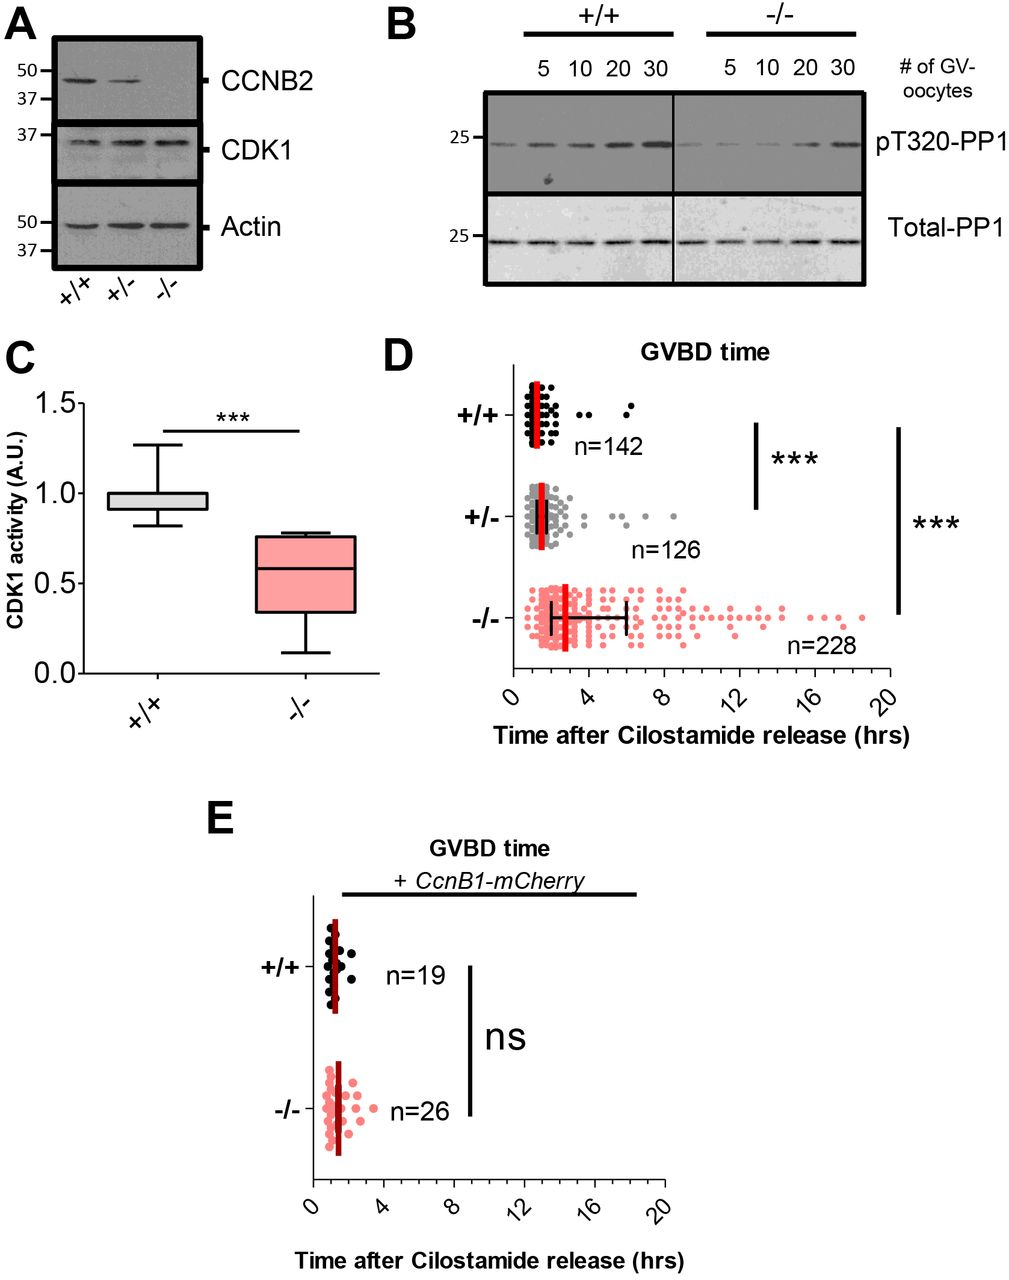 Cyclin B2 is required for progression through meiosis in mouse